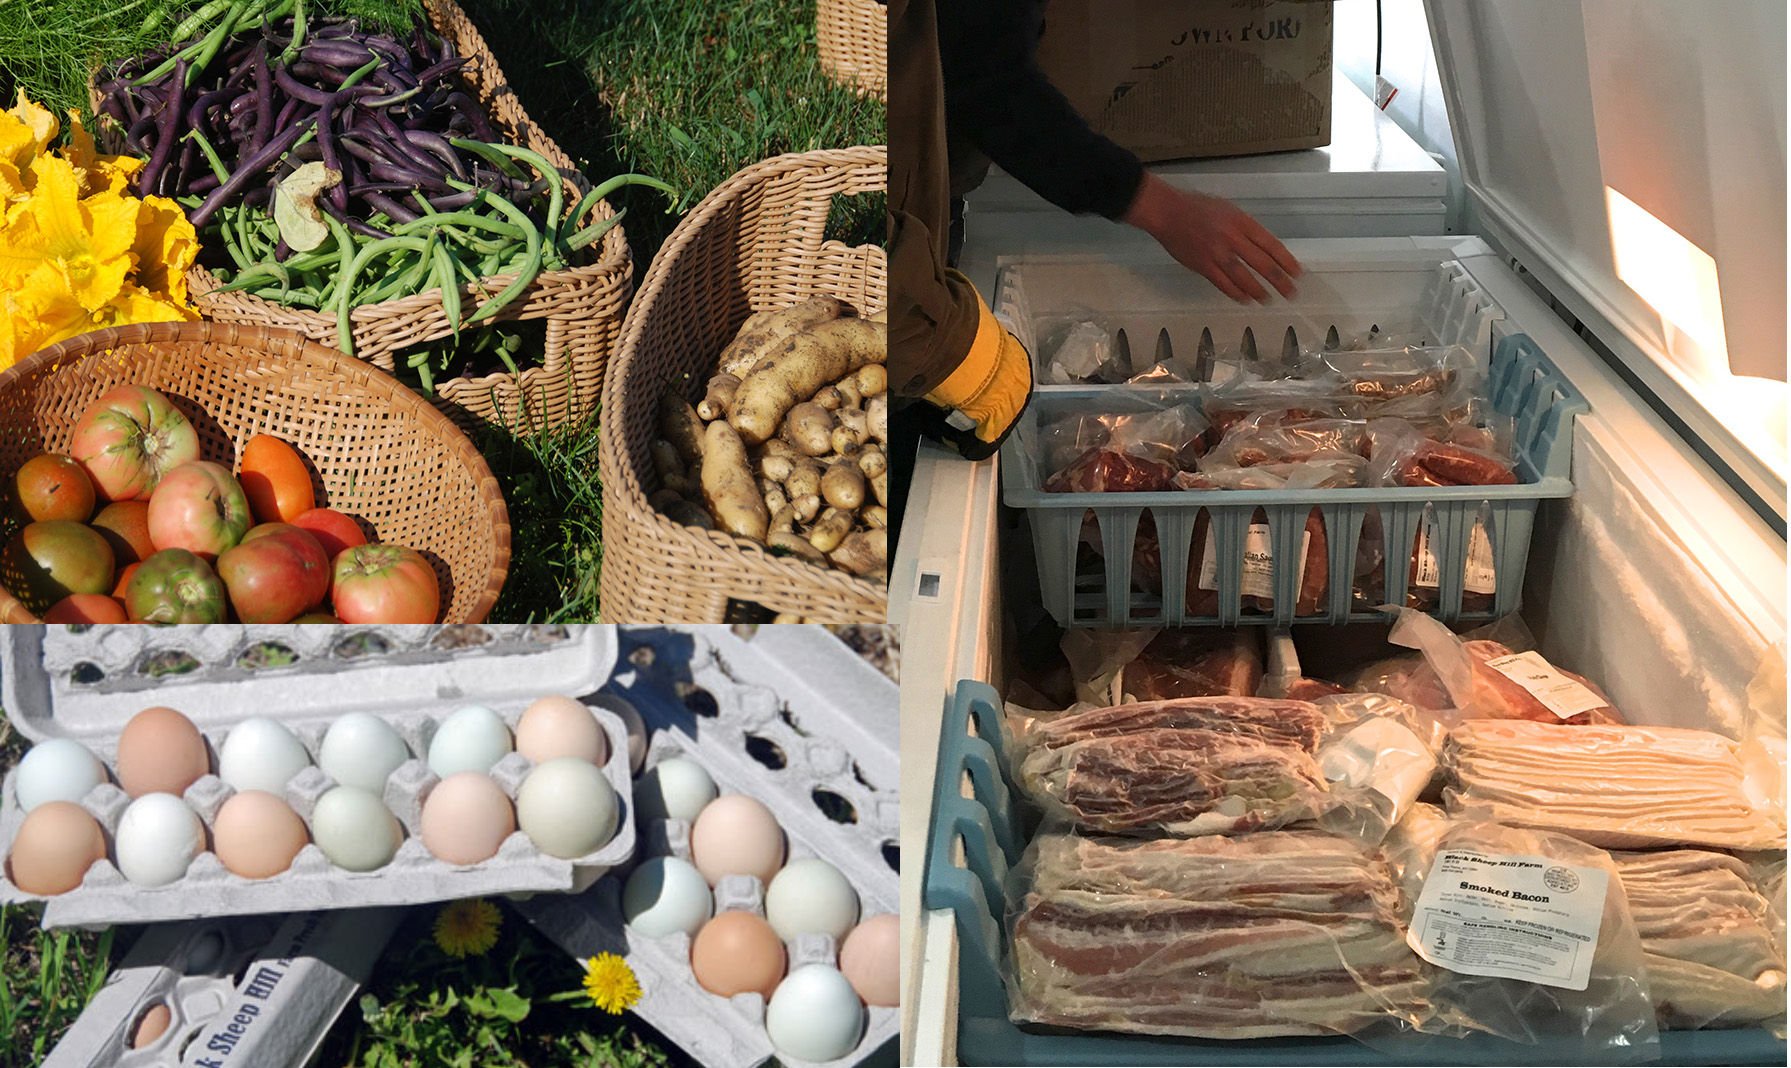 Produce and Meats - What we sell at the farm!